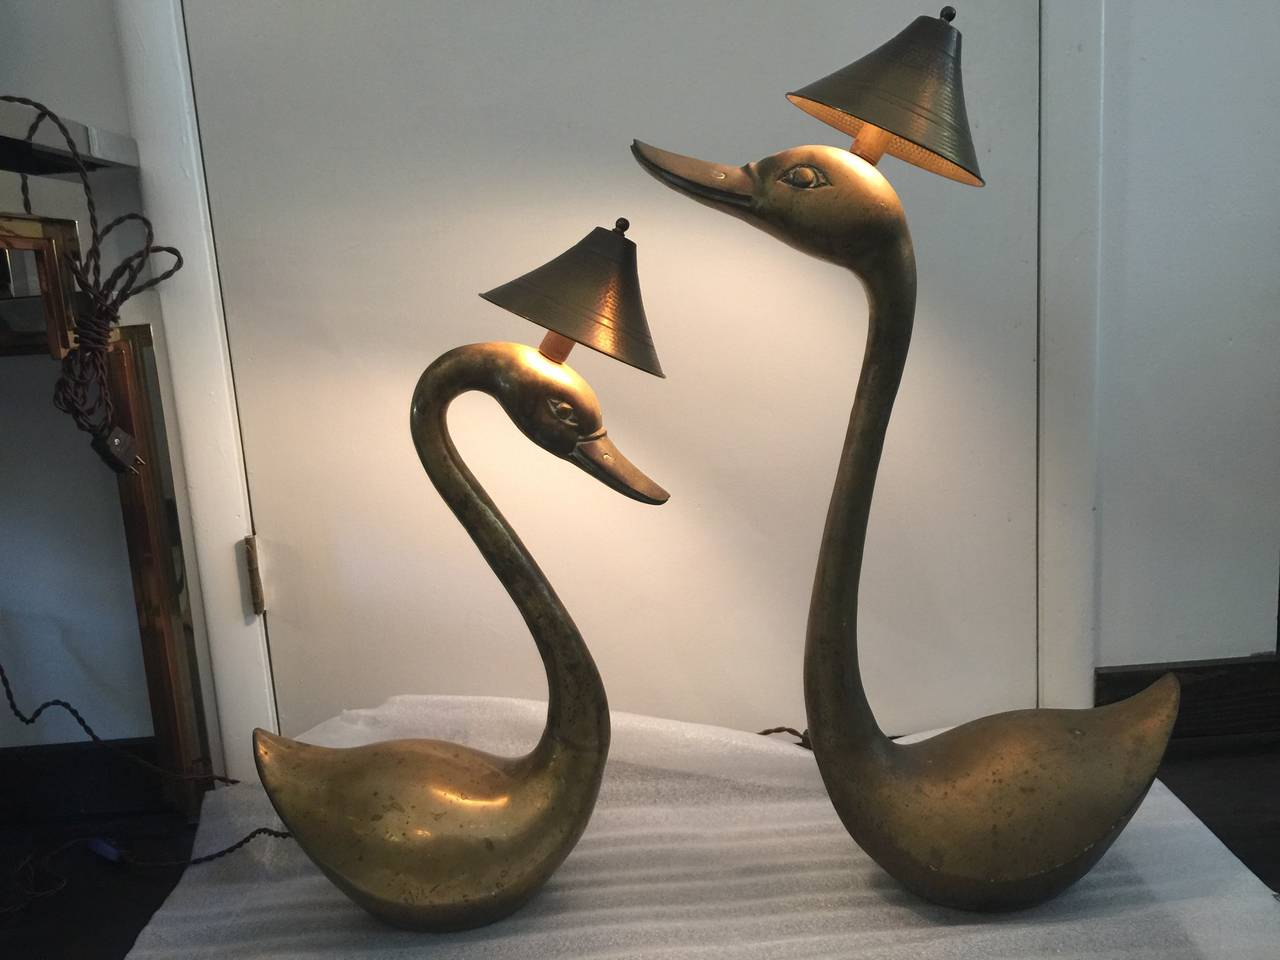 Wonderful scale sculptural brass lamps with metal shades. Wired with silk cords. Smaller lamp is 26